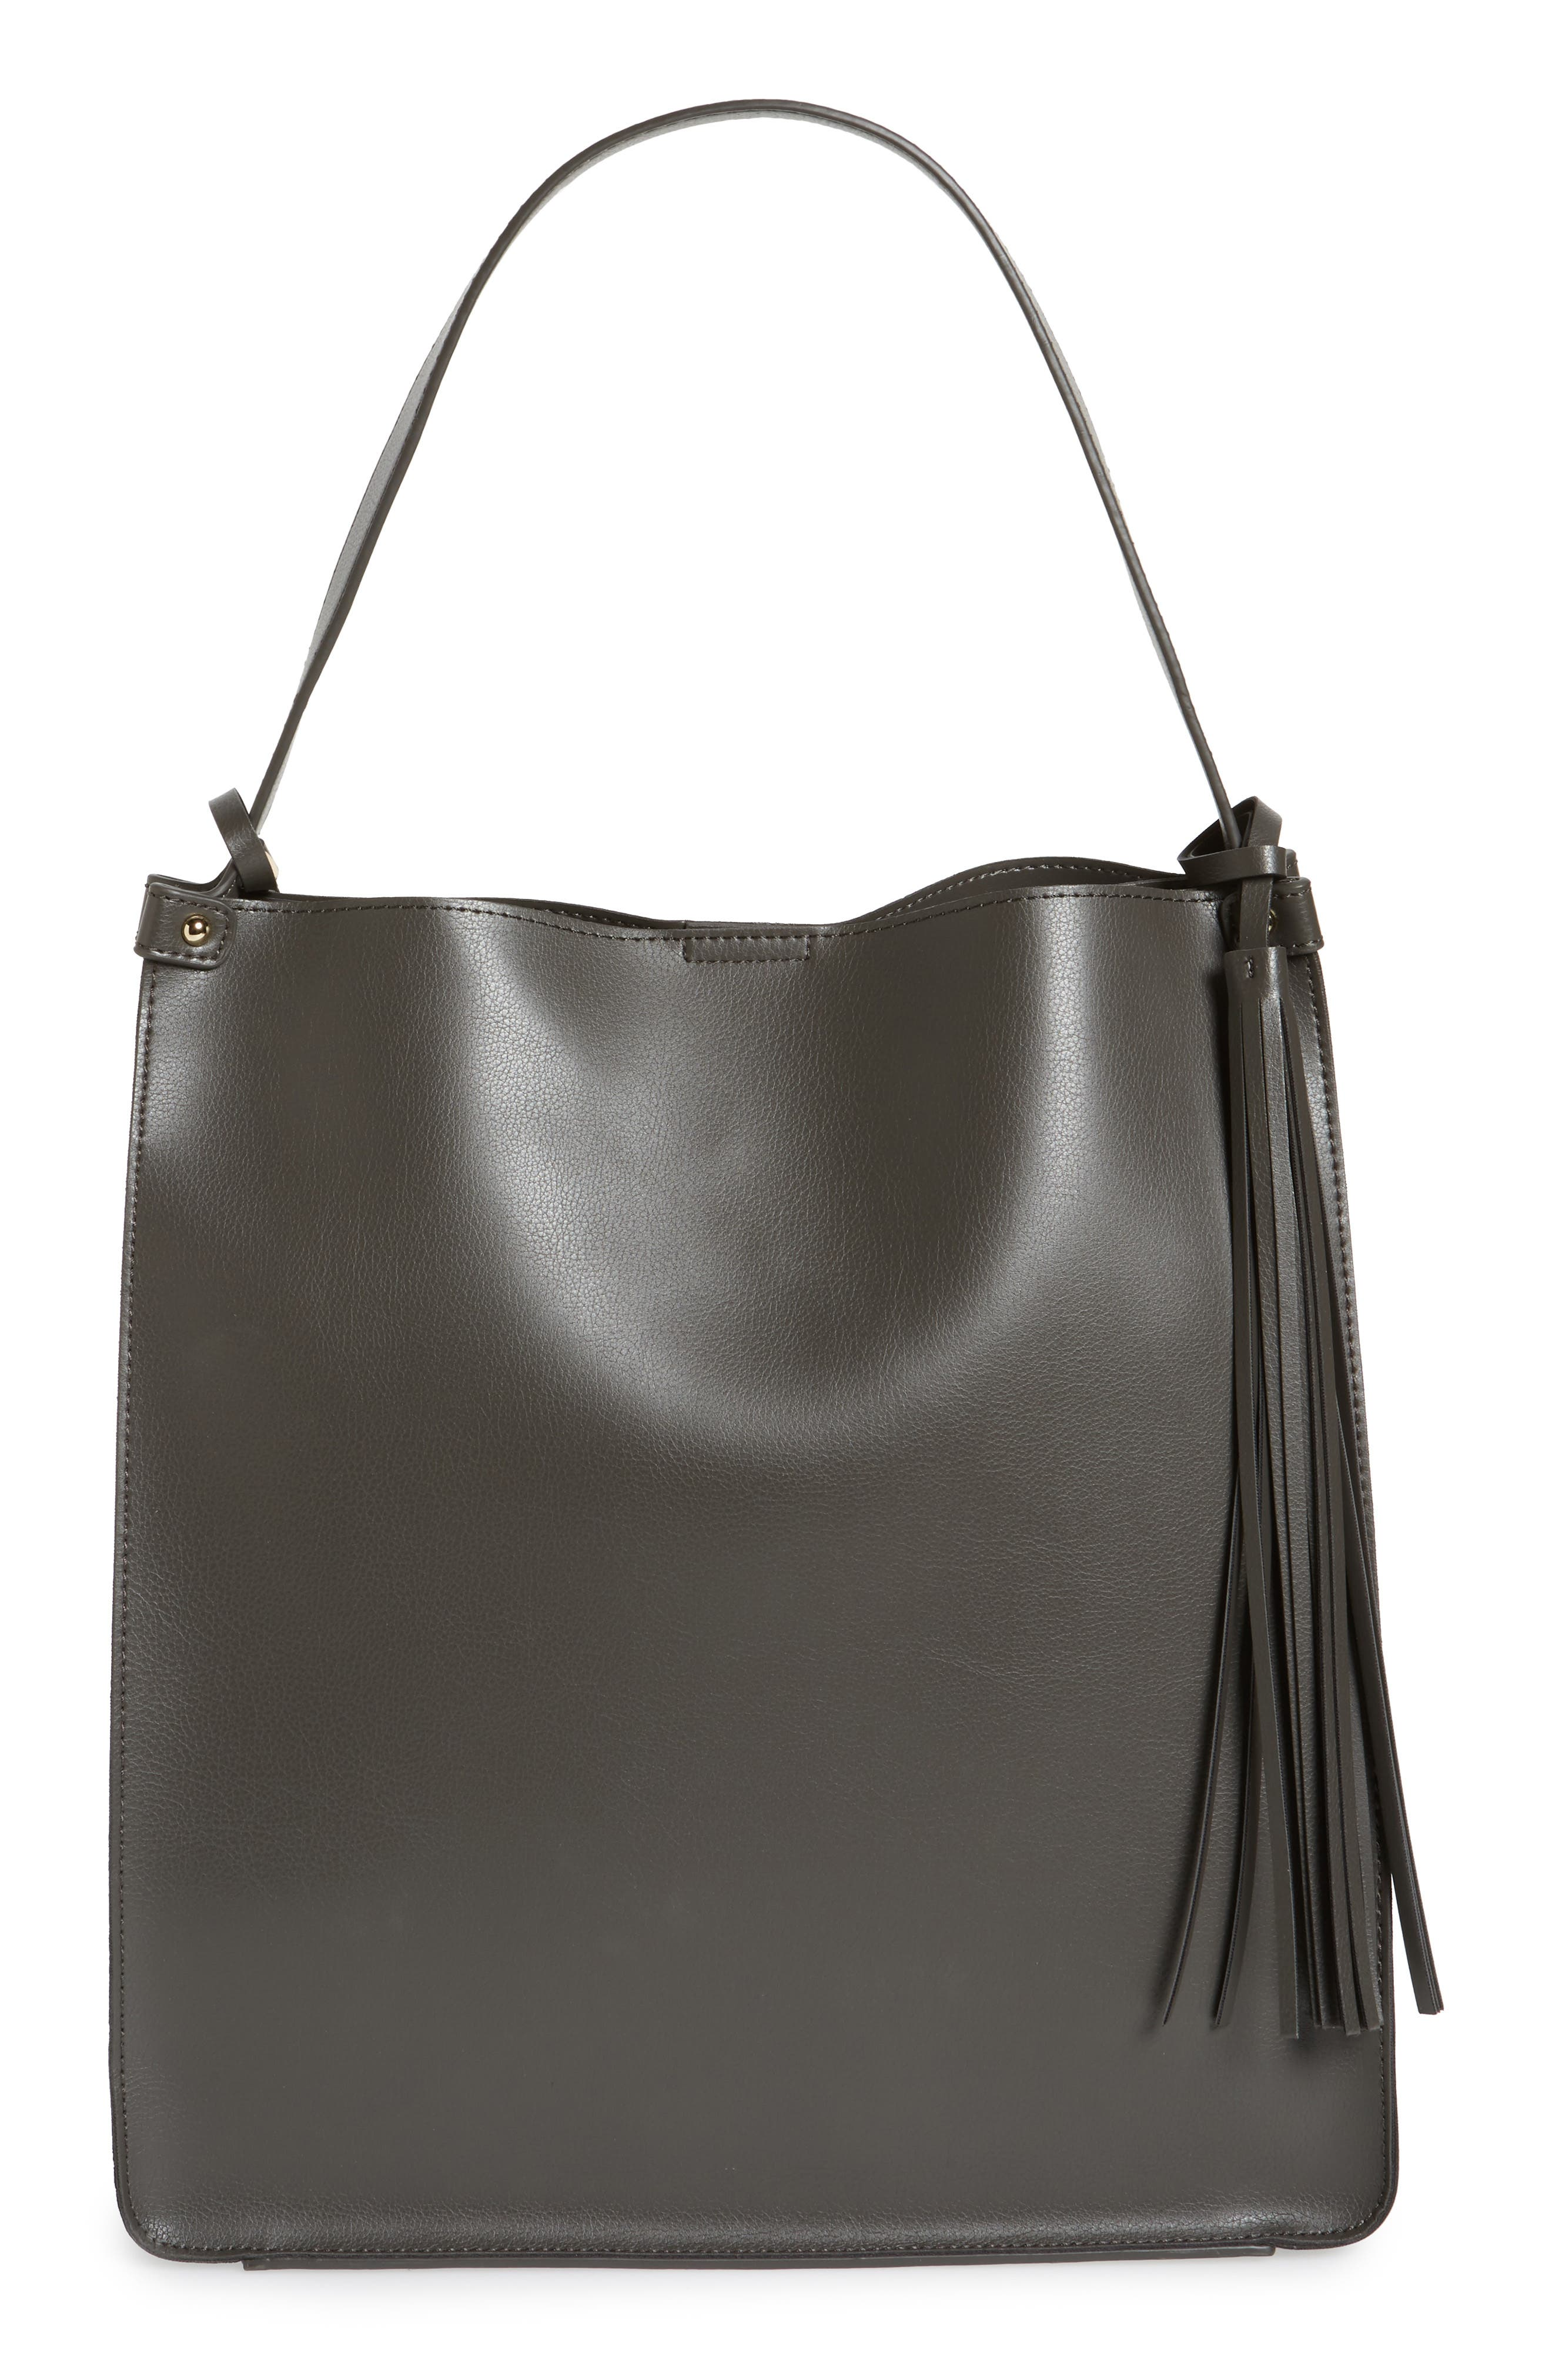 Alternate Image 1 Selected - Sole Society Karlie Faux Leather Bucket Bag